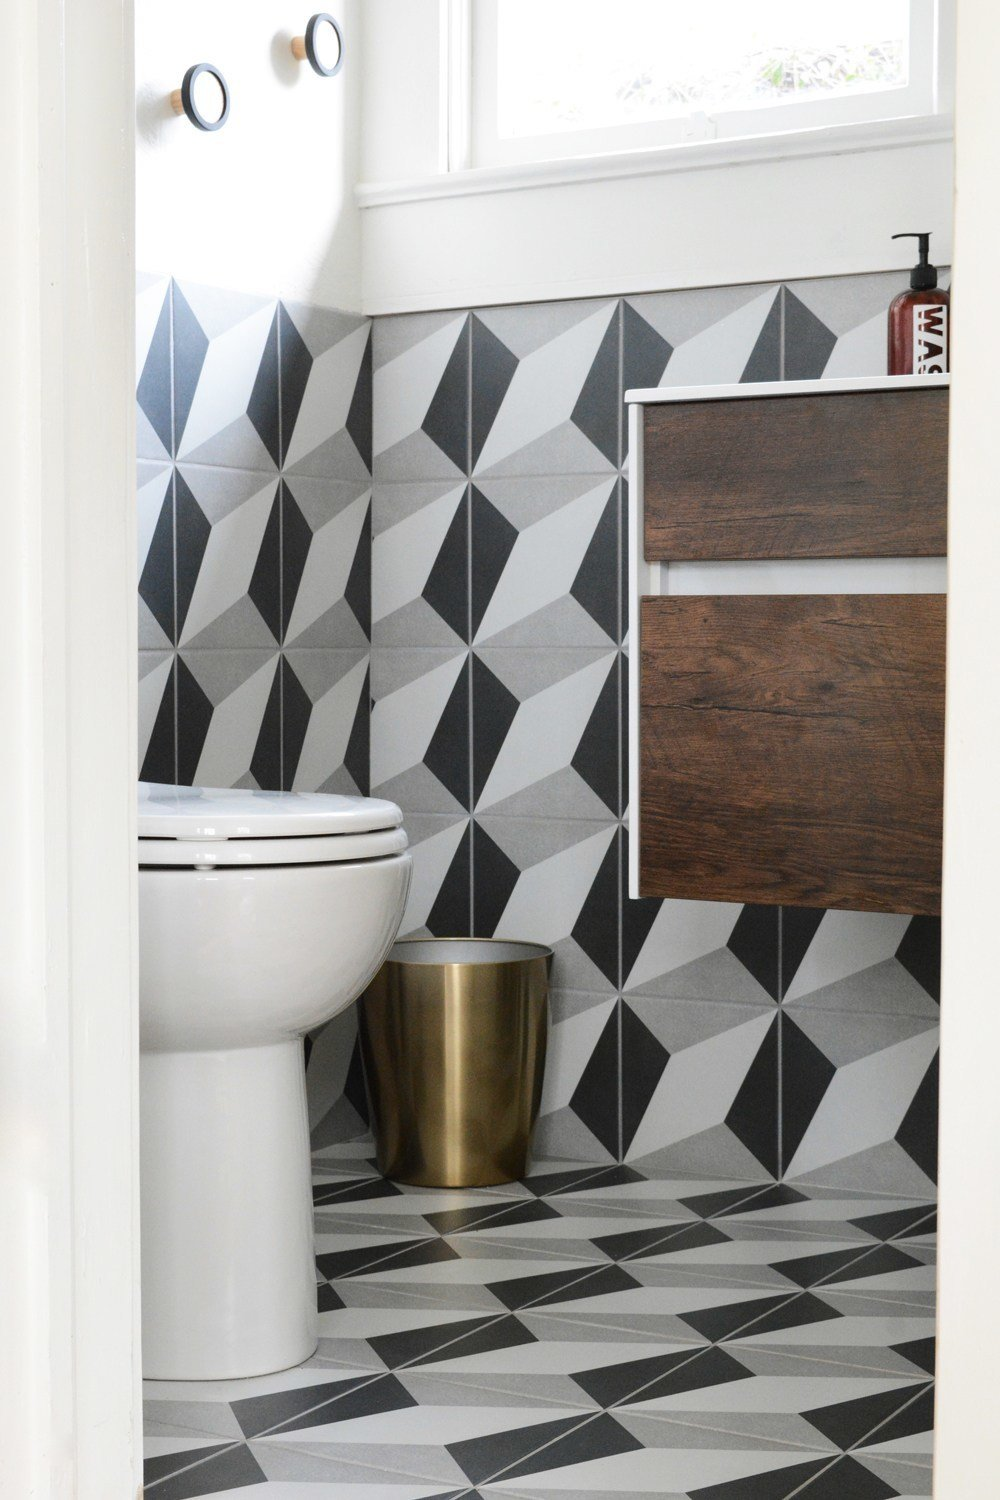 Photo 5 of 10 in A Small 1920s Guesthouse Bathroom Gets A Modern Makeover